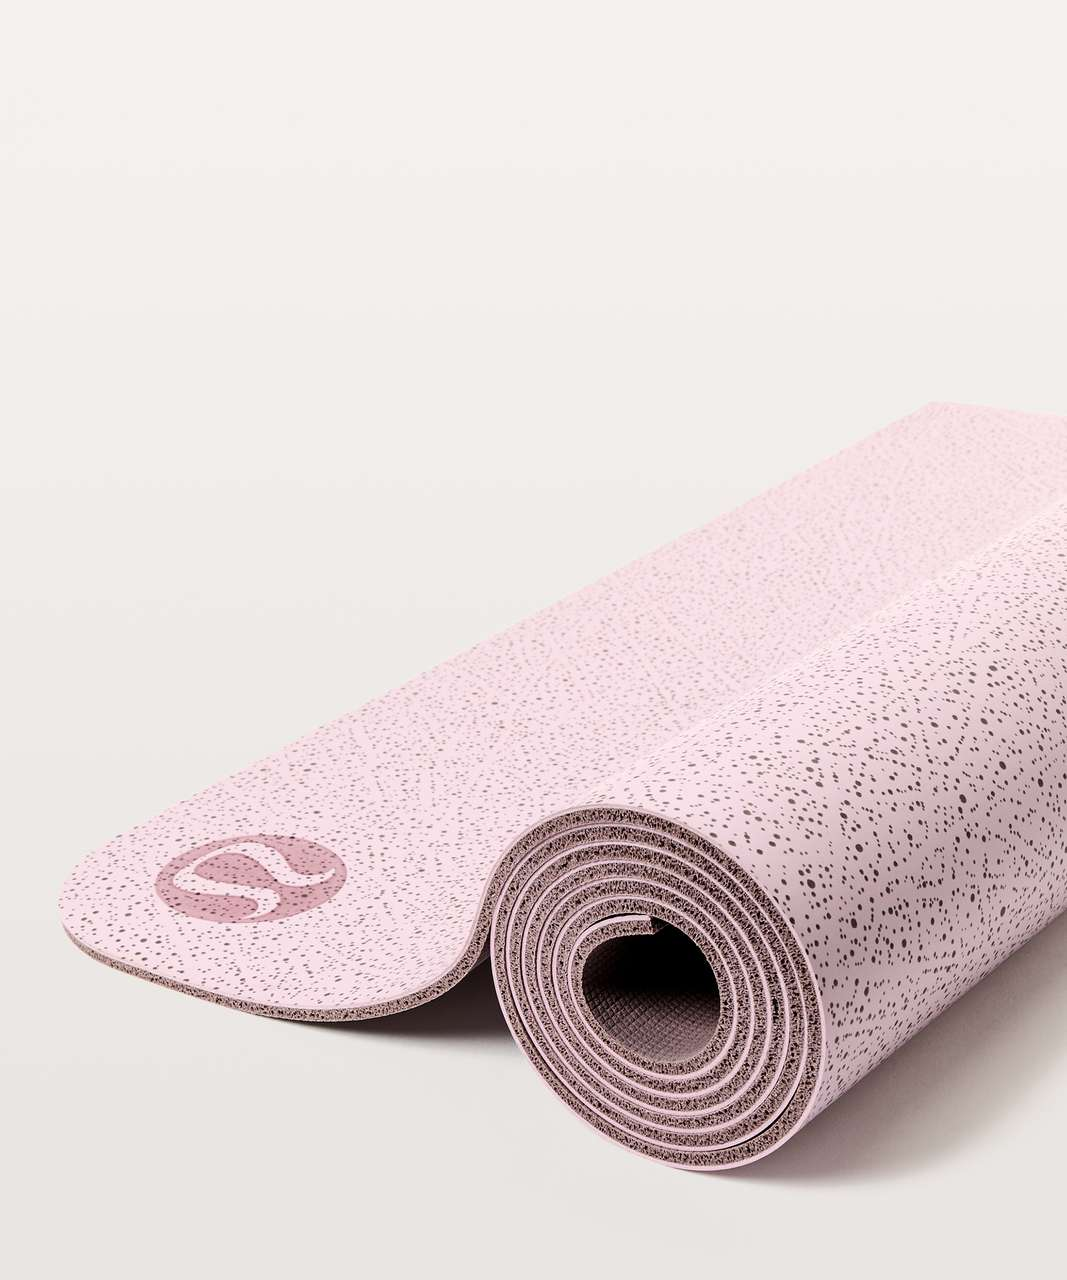 Lululemon The Reversible Mat 5mm - Night View Porcelain Pink Misty Mauve / Misty Mauve